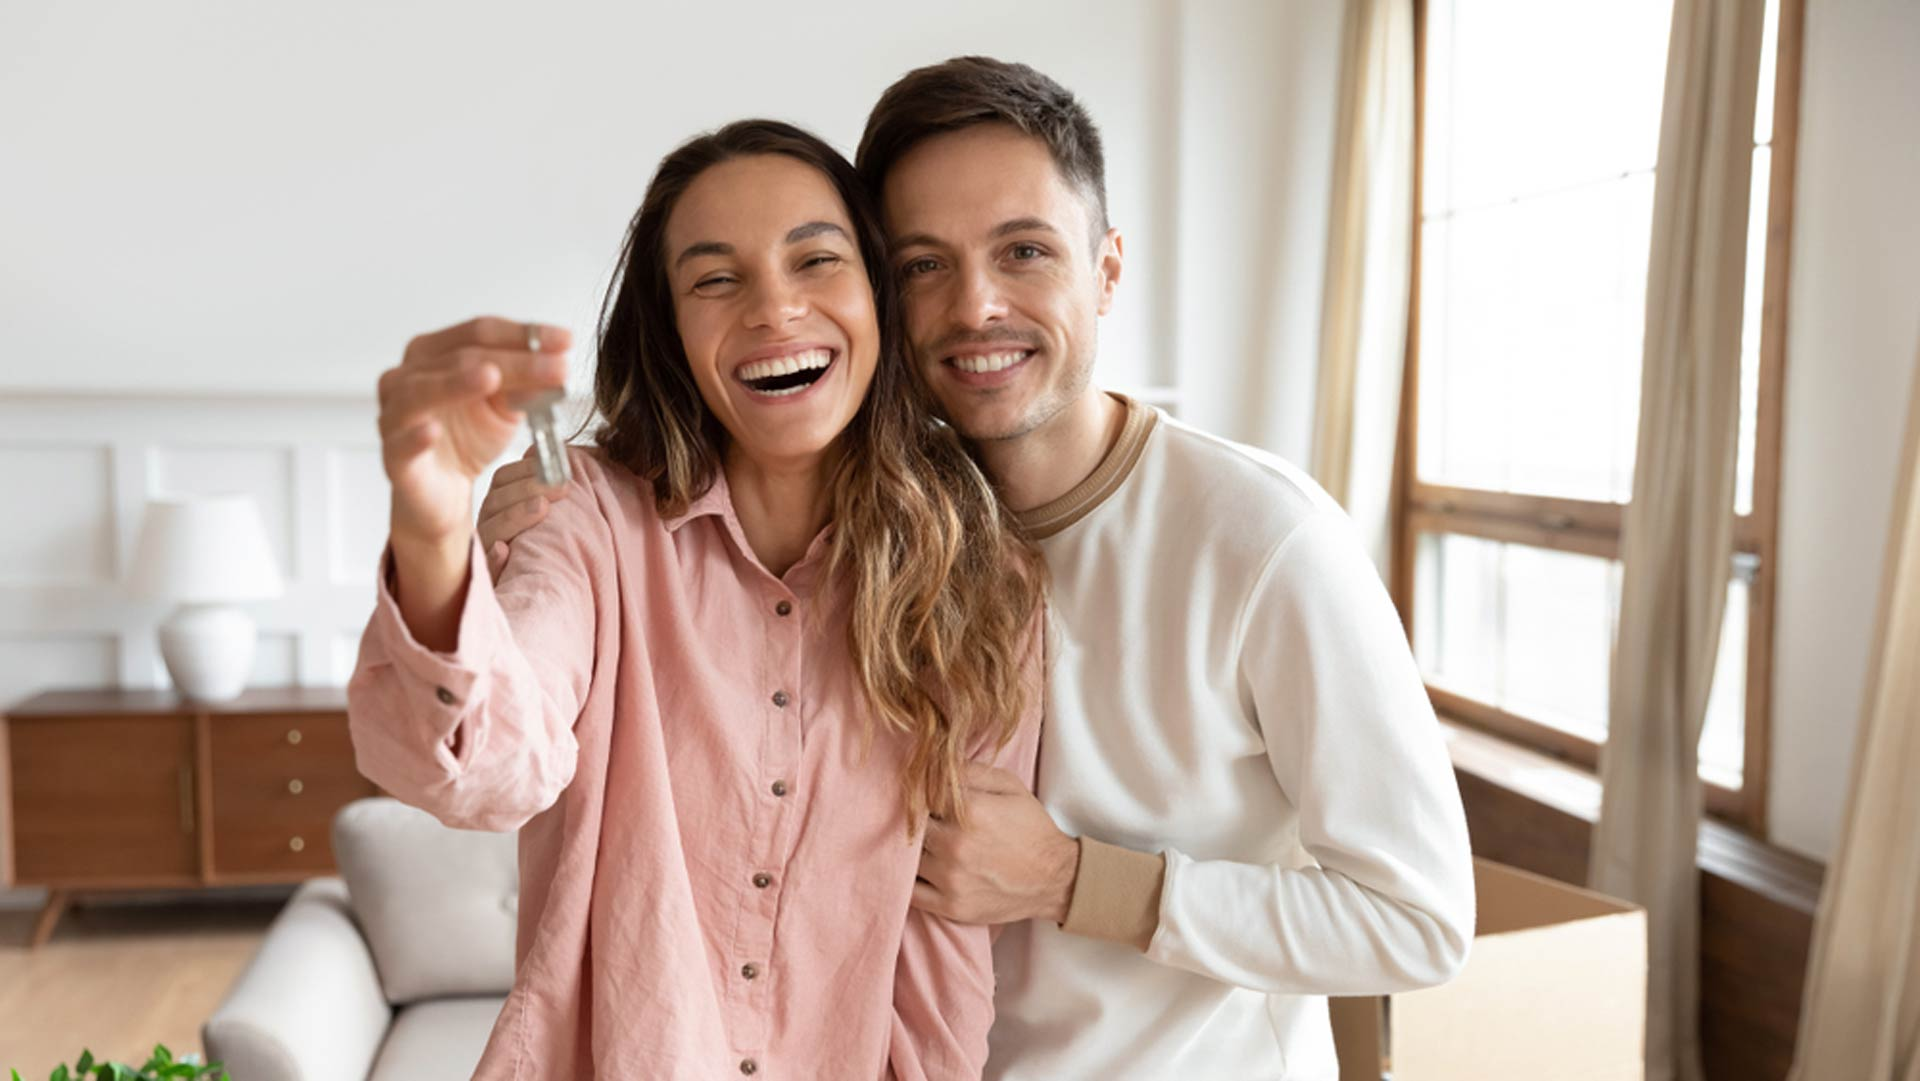 Our First Home Buyers: The Ultimate Guide will provide you with everything you need to know to embark on your exciting home-buying journey in 2021!